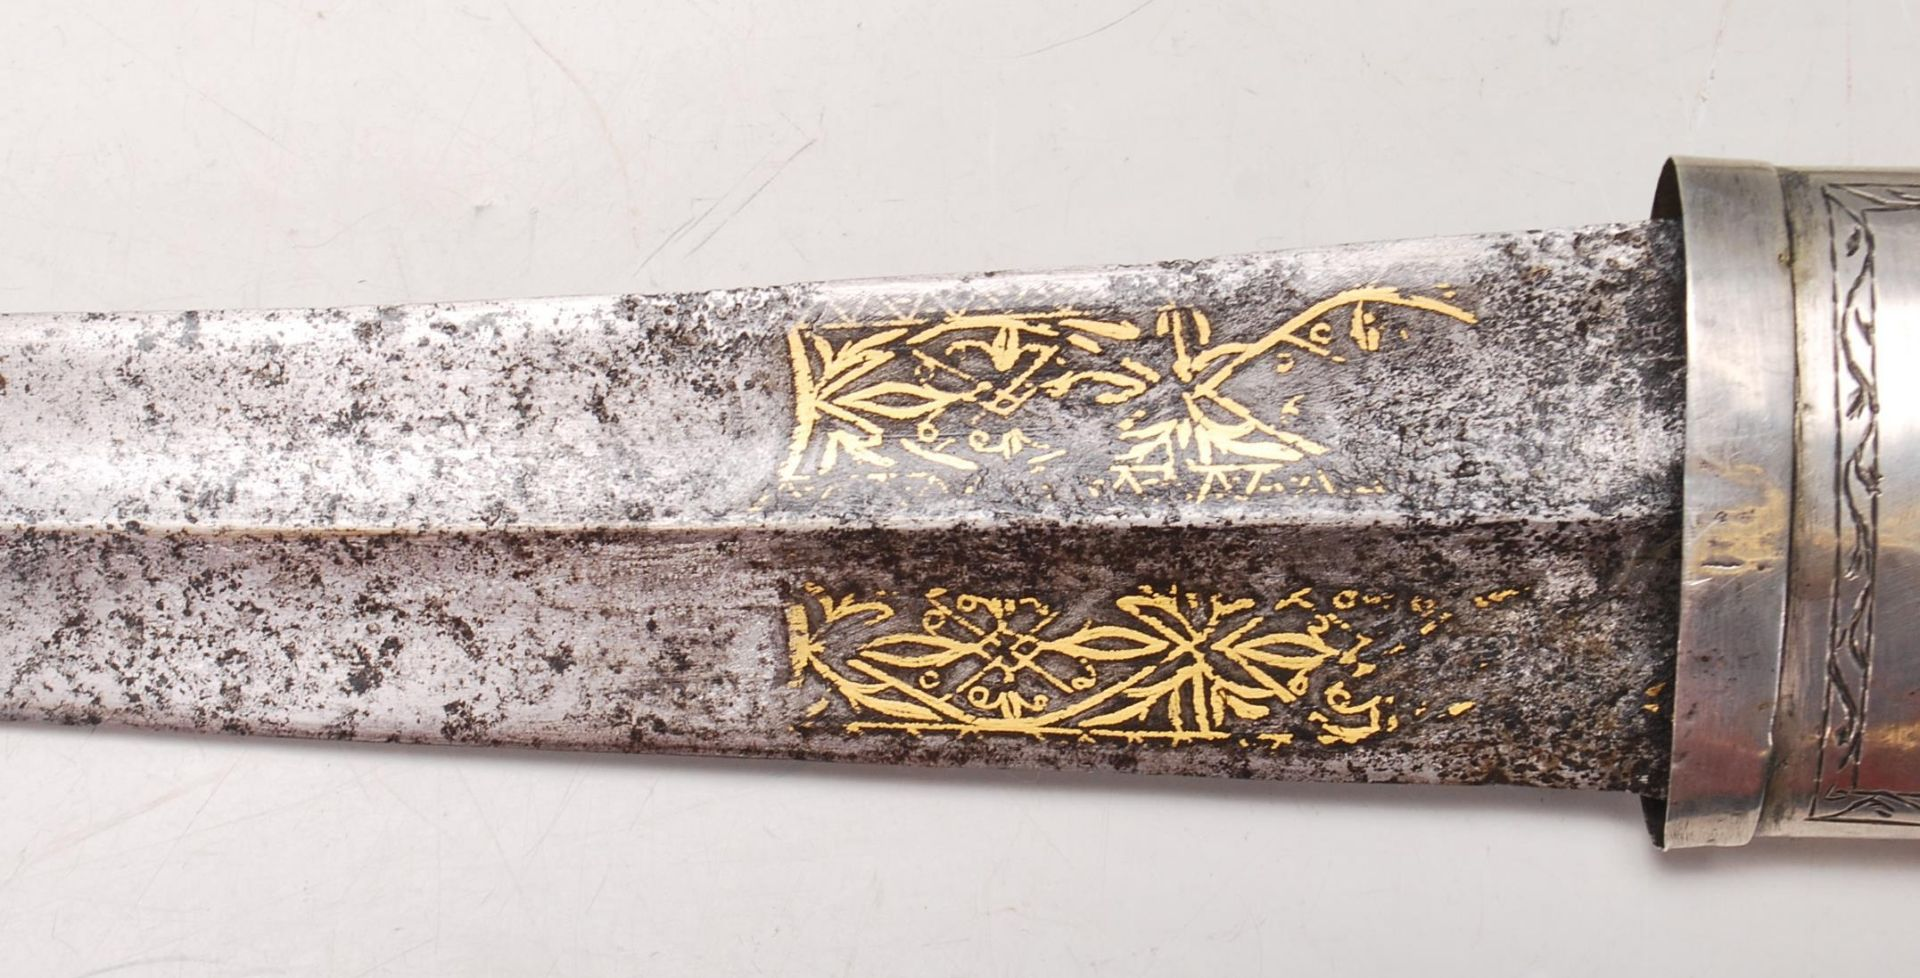 ANTIQUE PERSIAN ISLAMIC CEREMONY DAGGER - Image 5 of 7